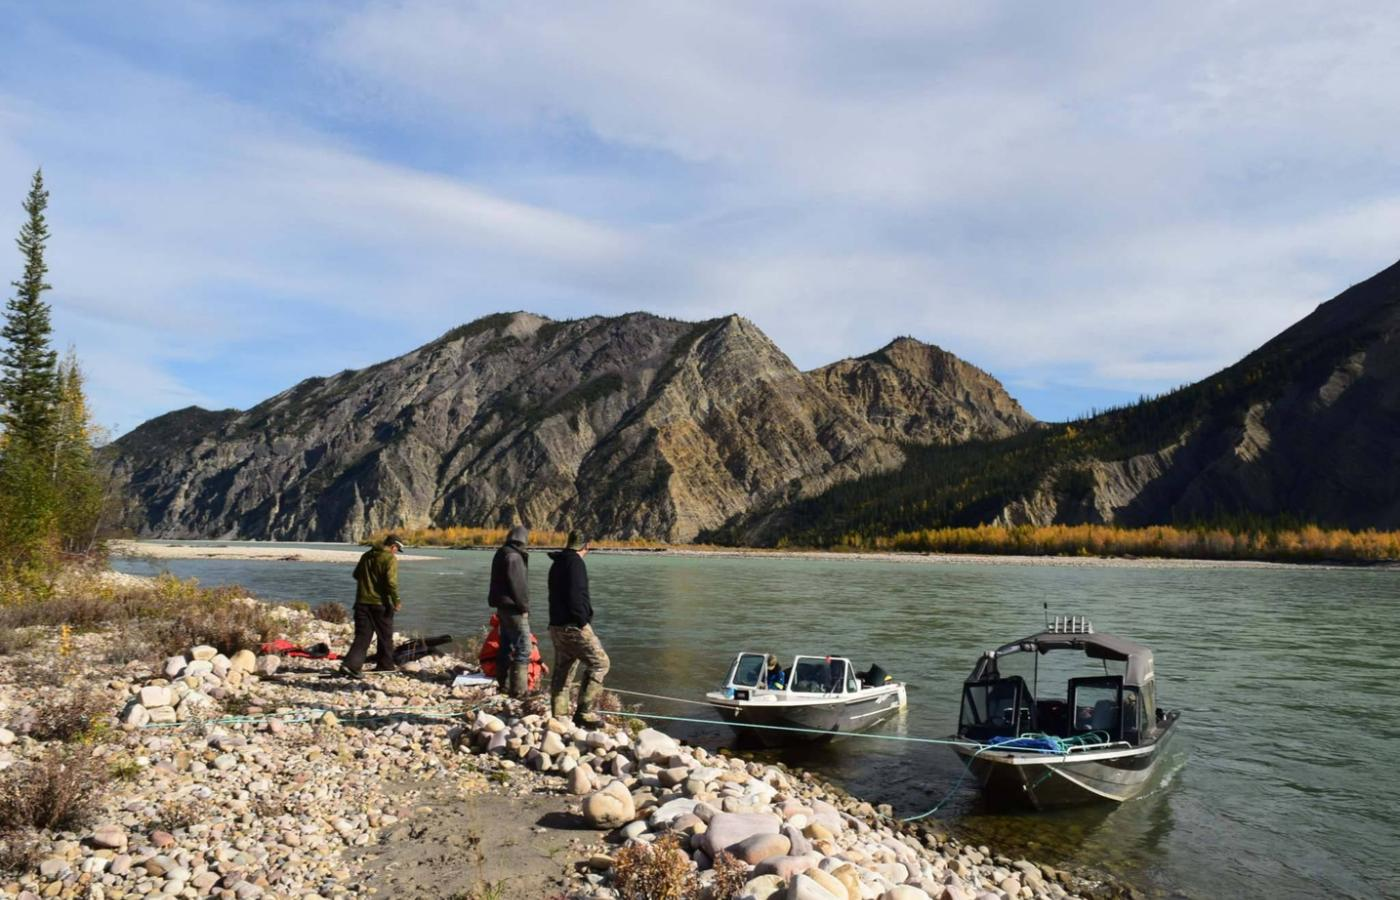 Fishing in the Sahtu region of the NWT.